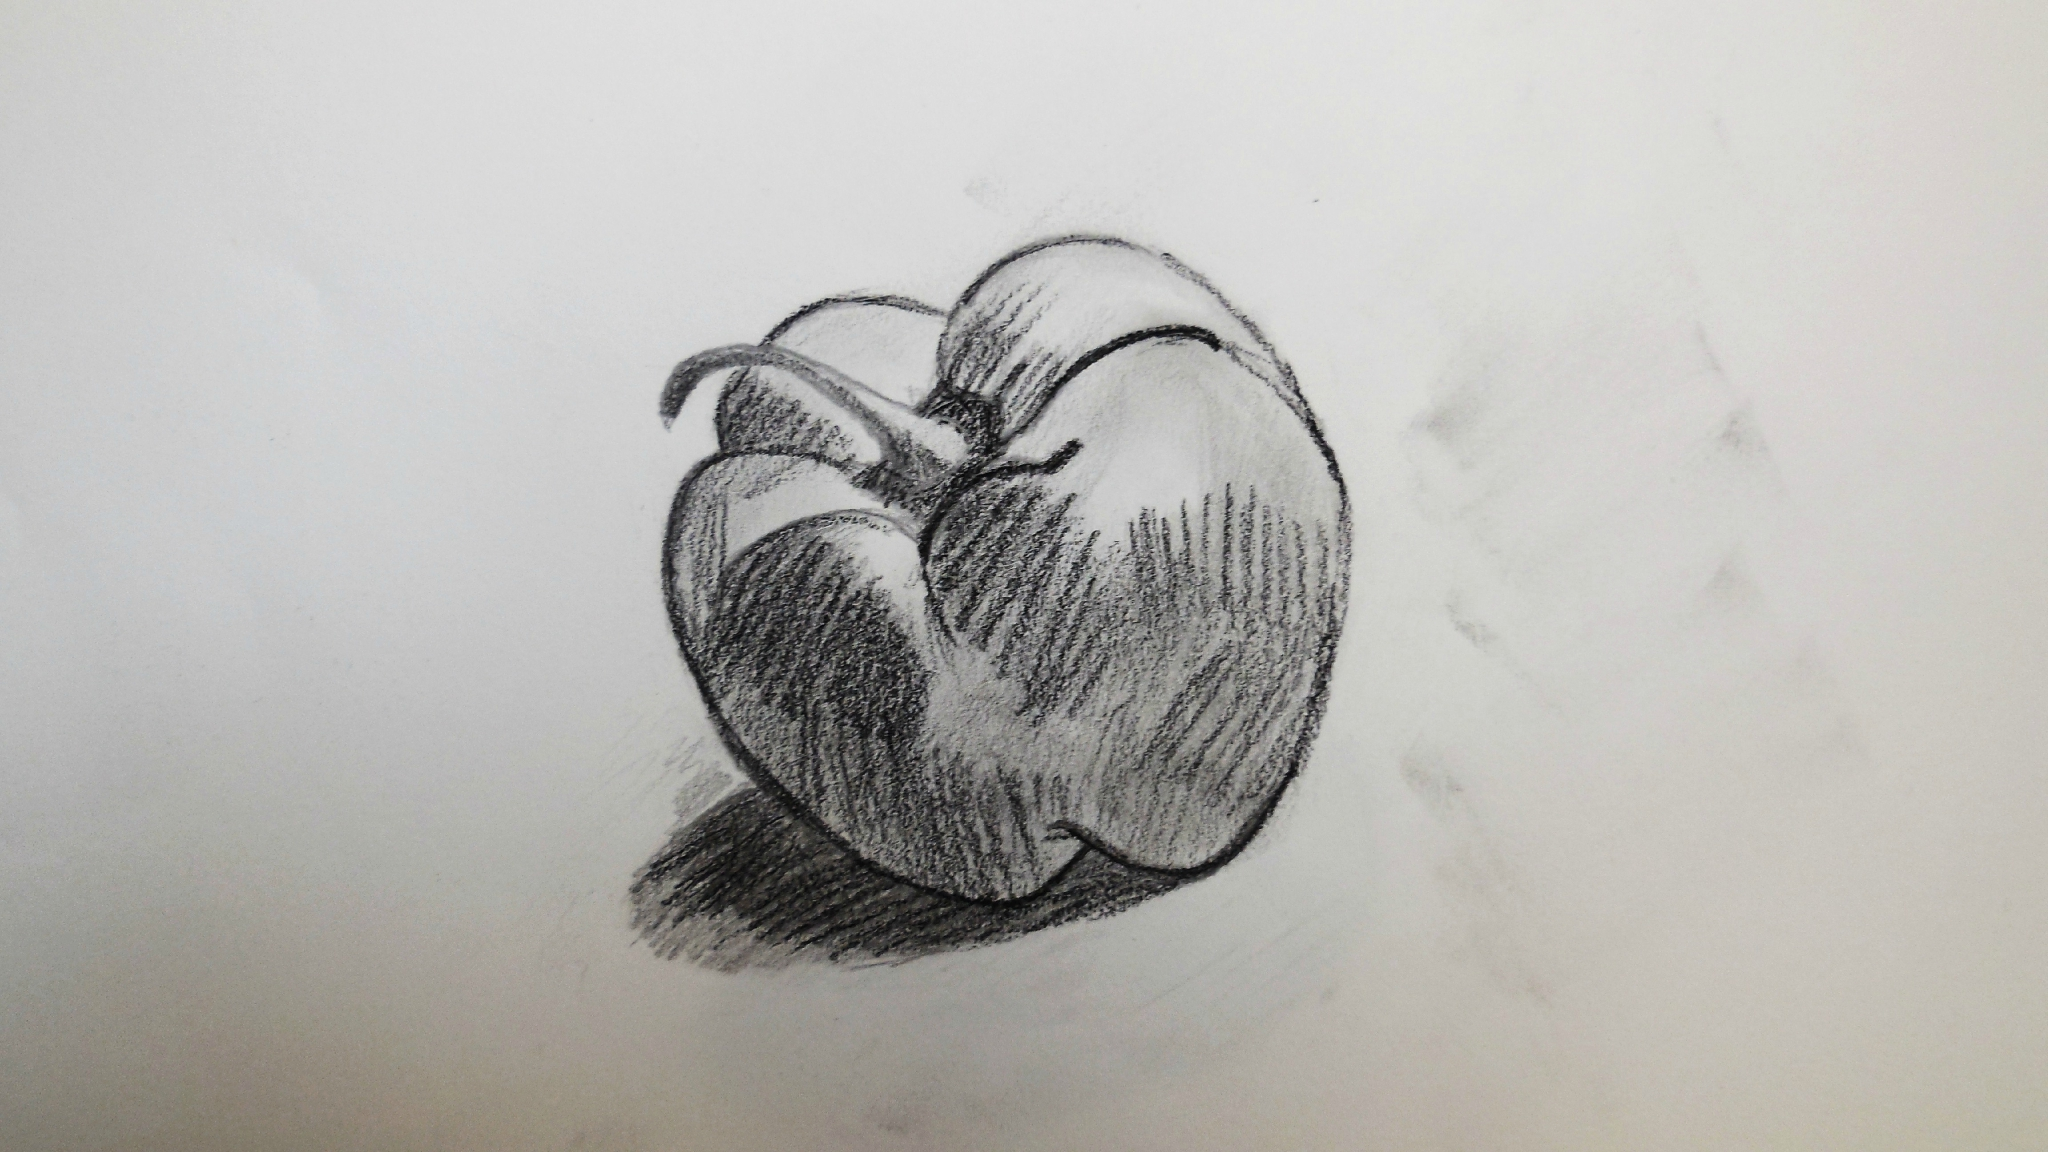 Un poivron charlotte 39 s drawings - Dessin nature morte ...